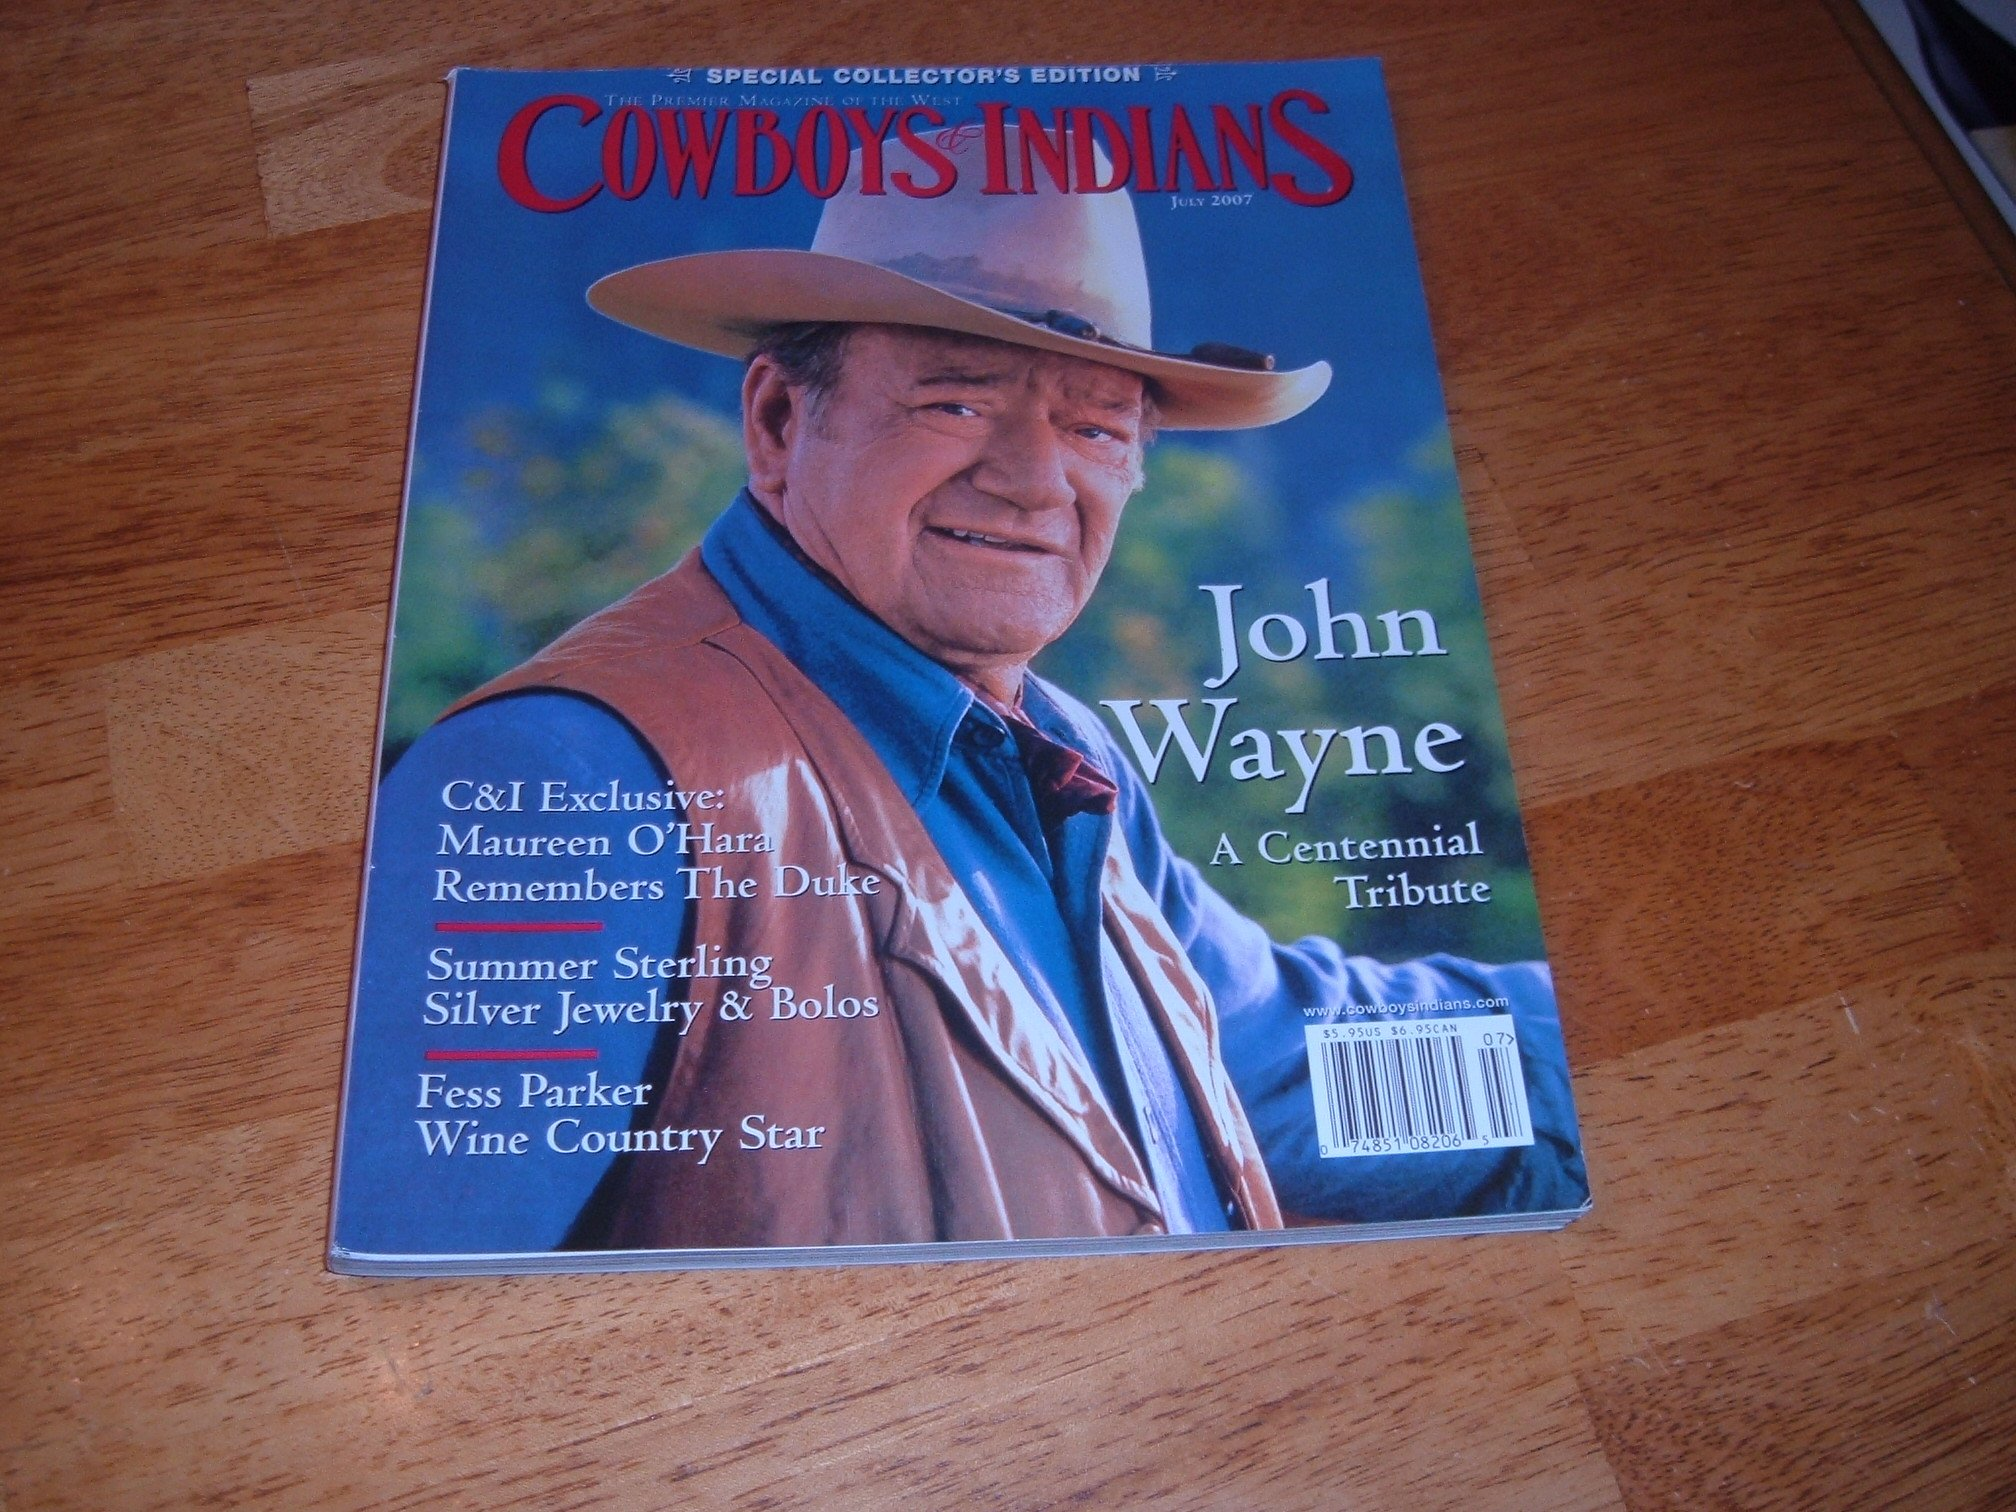 Download COWBOYS & INDIANS magazine July 2007 (The Premier Magazine Of The West, www.cowboysindians.com, Volume 15 Number 5, John Wayne - A Centennial Tribute, Special Collector's Edition, C&I Exclusive: Maureen O'Hara Remembers The Duke, Silver Jewelry & Bolos, Fess Parker) Text fb2 book